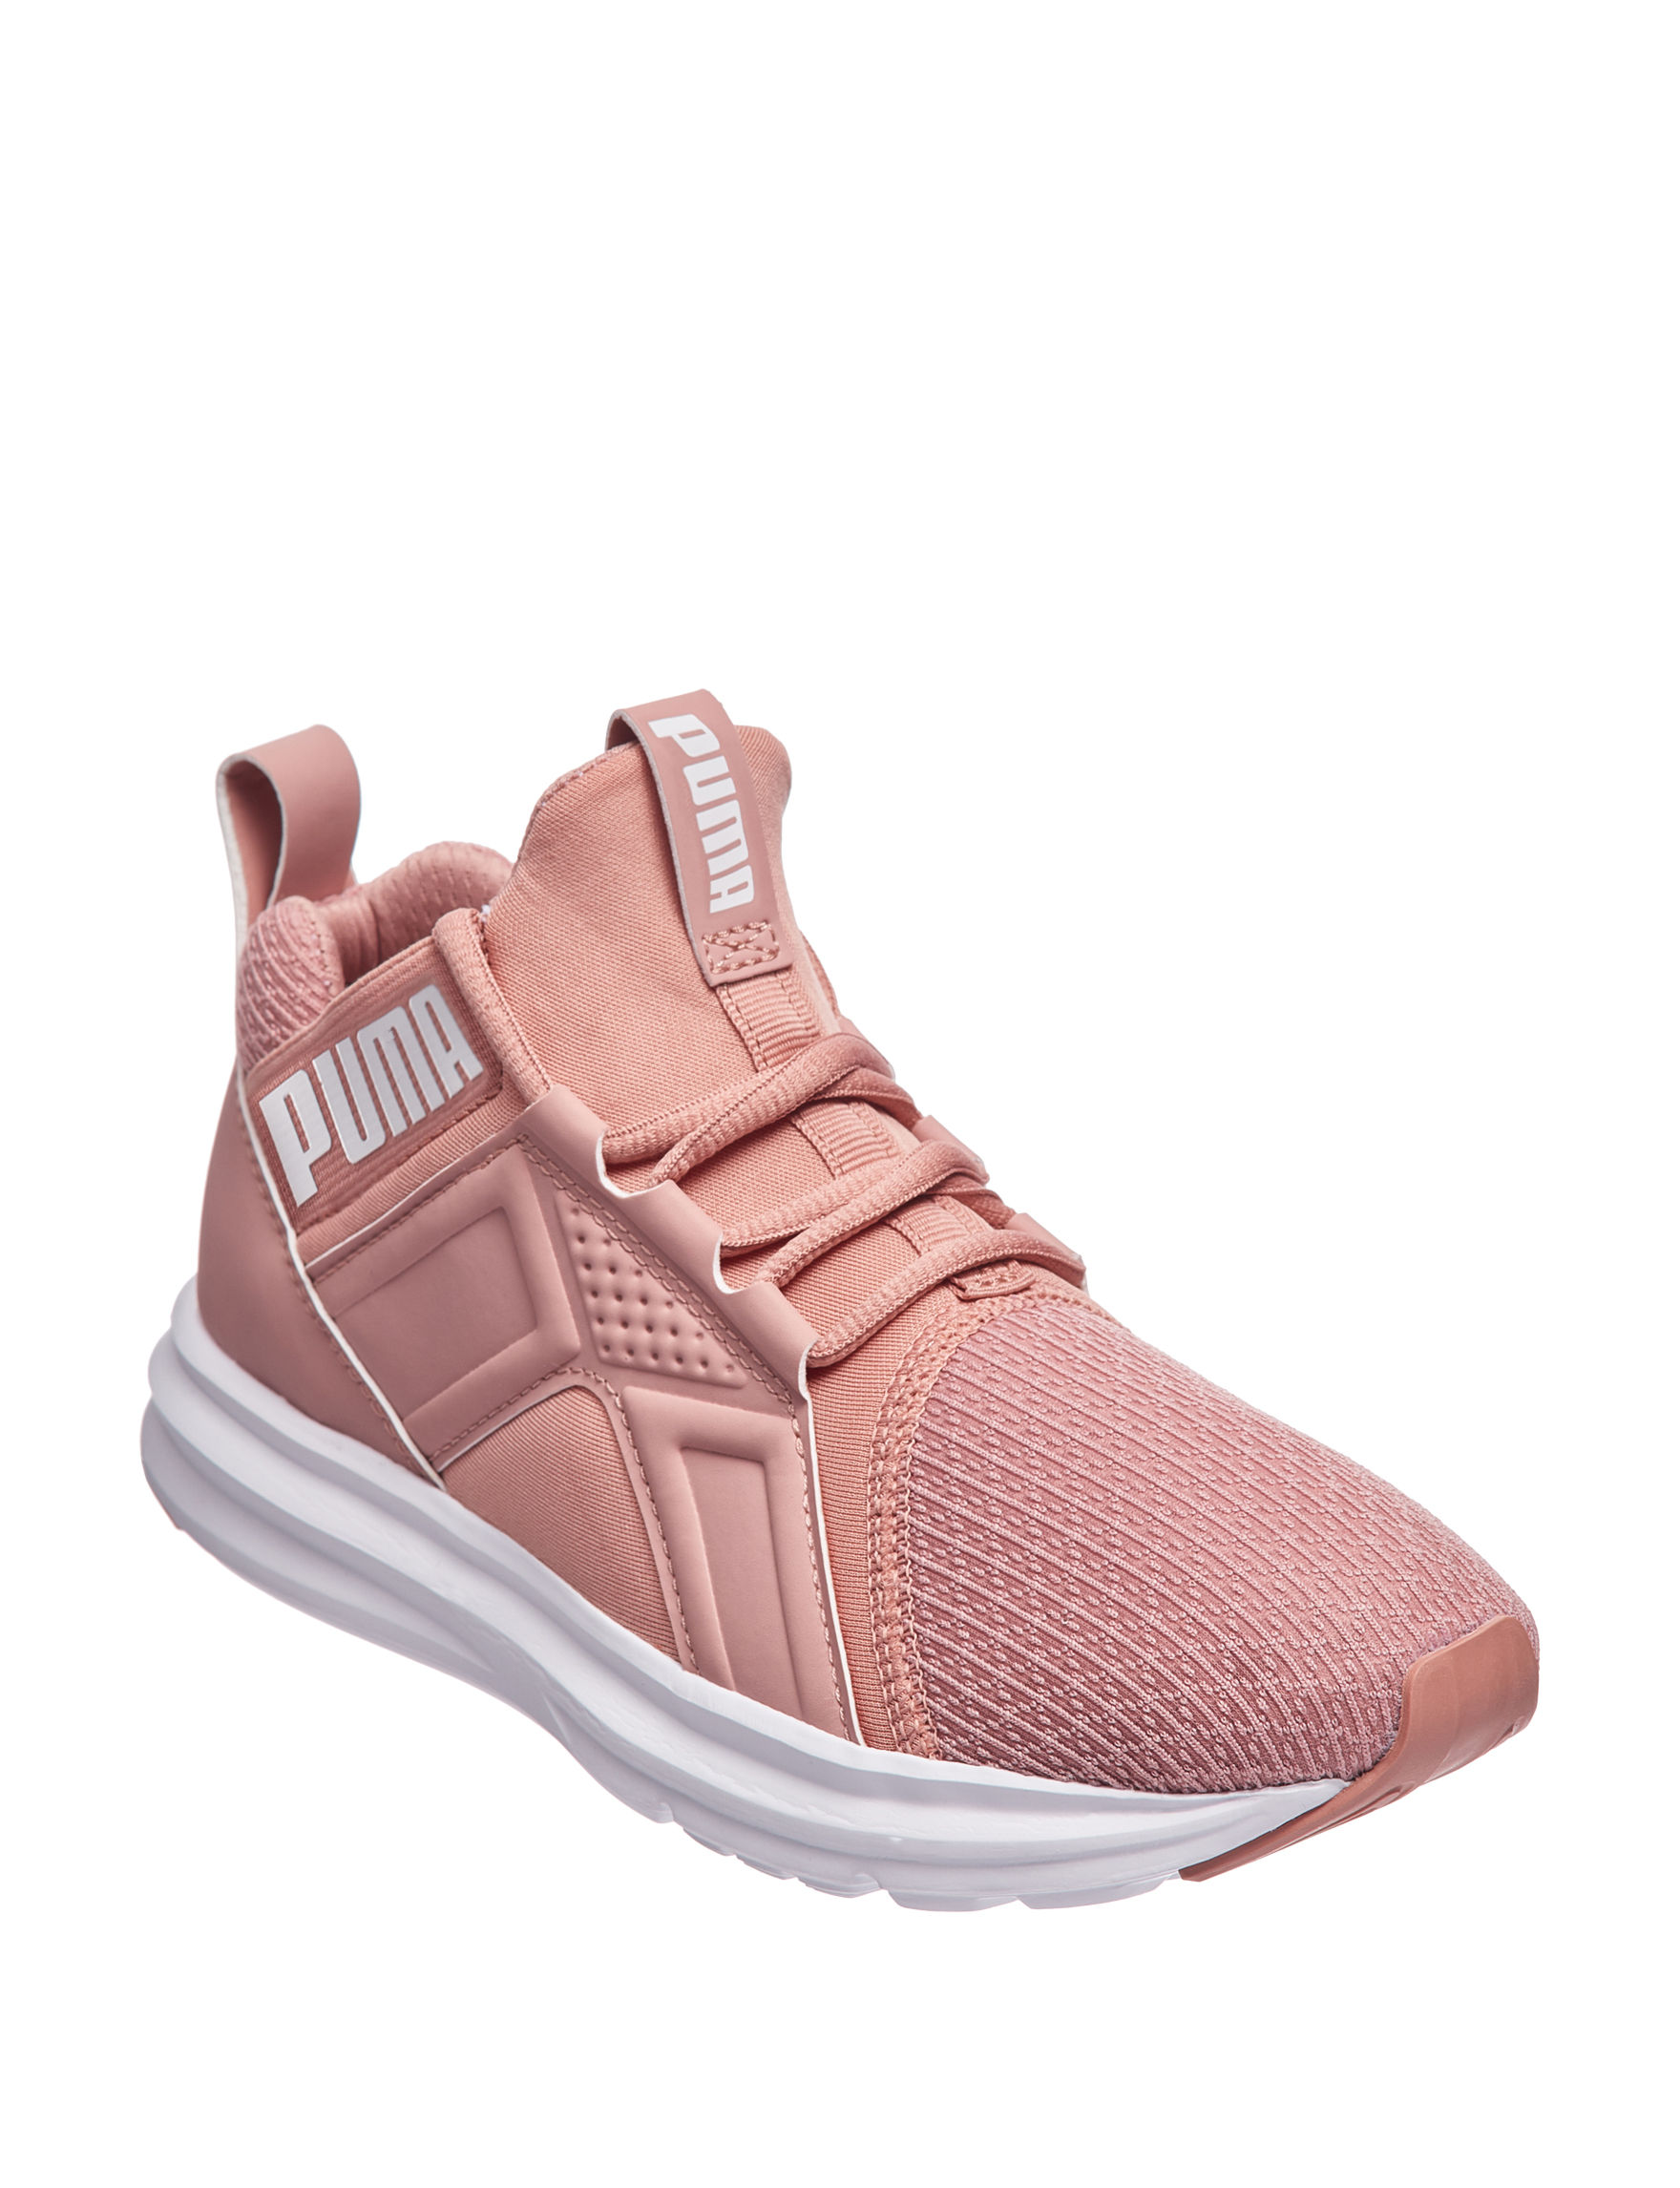 dbdd75a808 Puma Zenvo Lace-Up Shoes - Girls 4-6 | Stage Stores